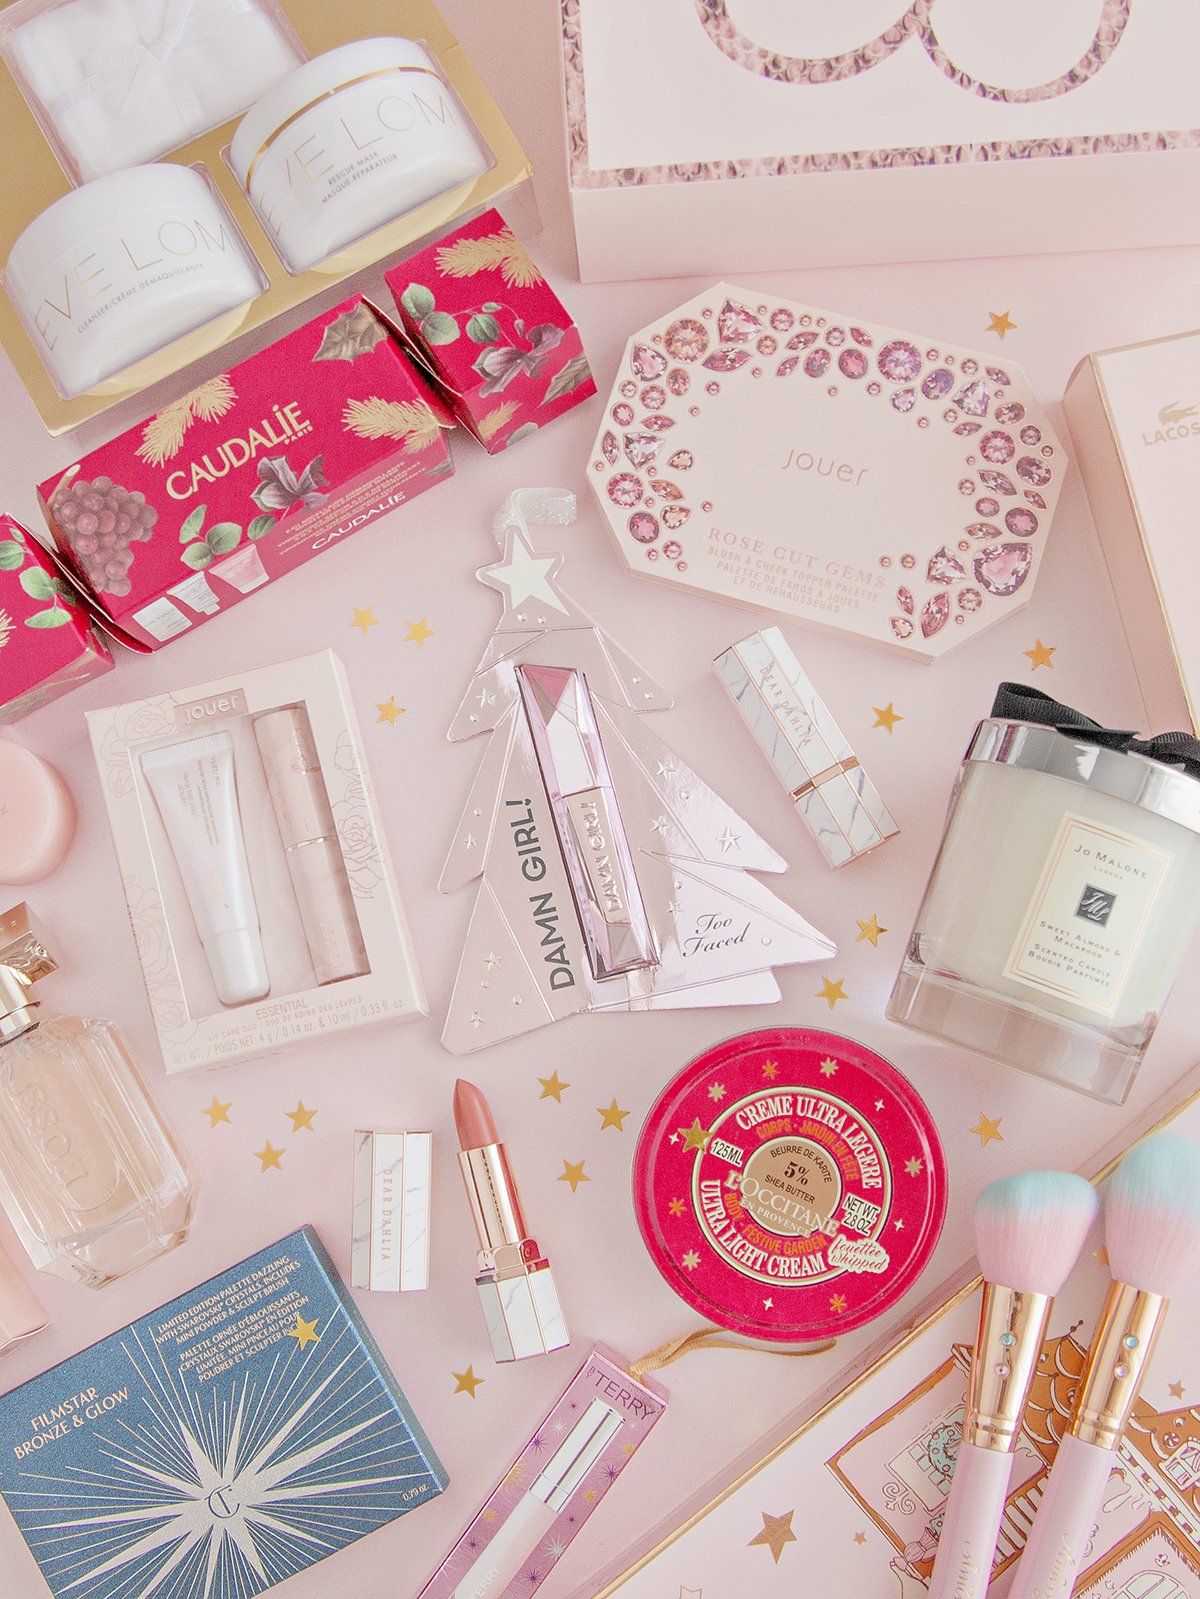 a selection of Christmas beauty products from brands Caudalie, Too Faced, Charlotte Tilbury